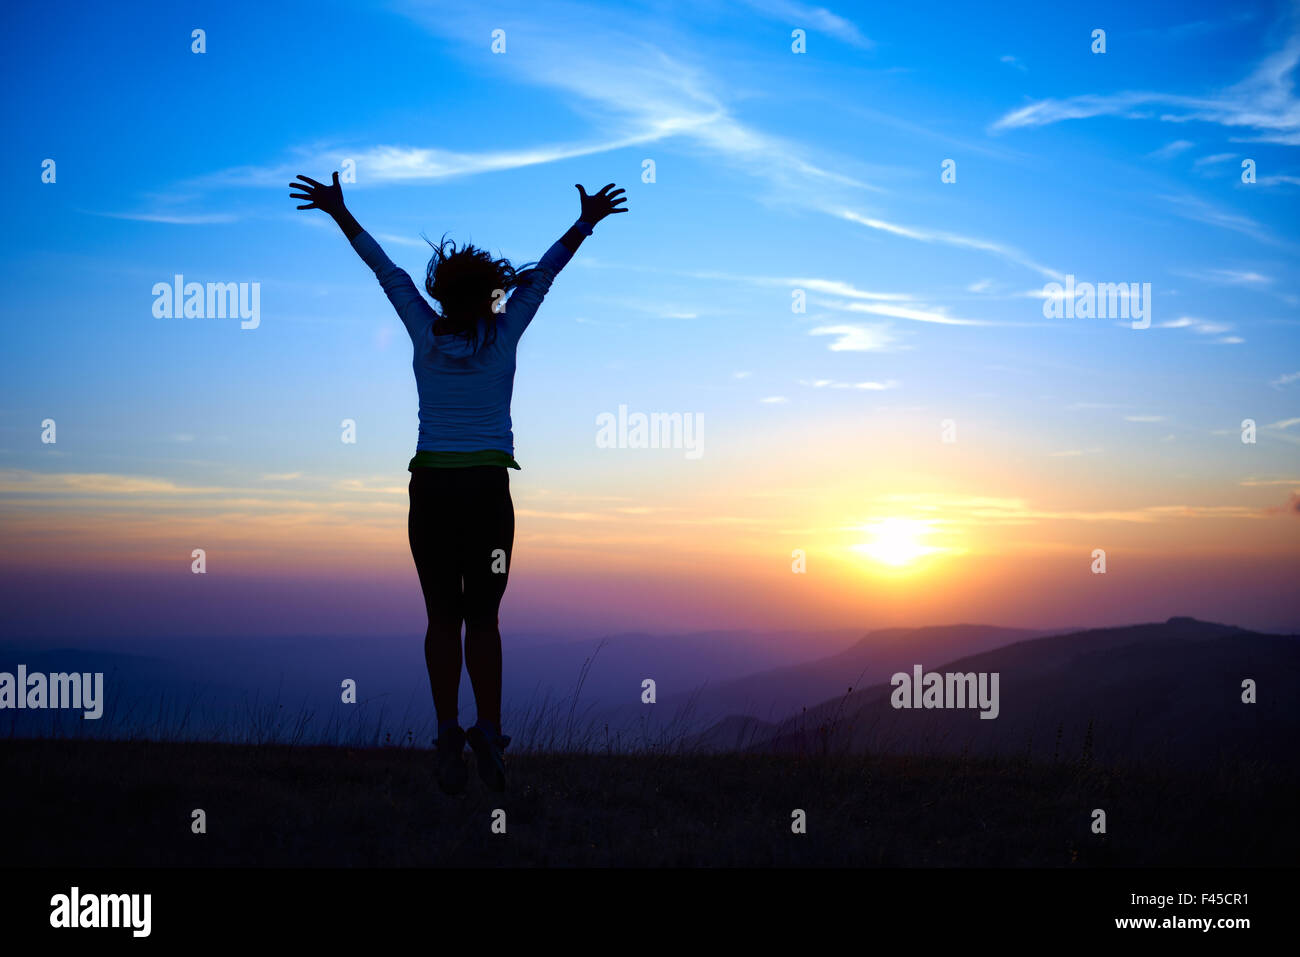 Silhouette of jumping young woman - Stock Image